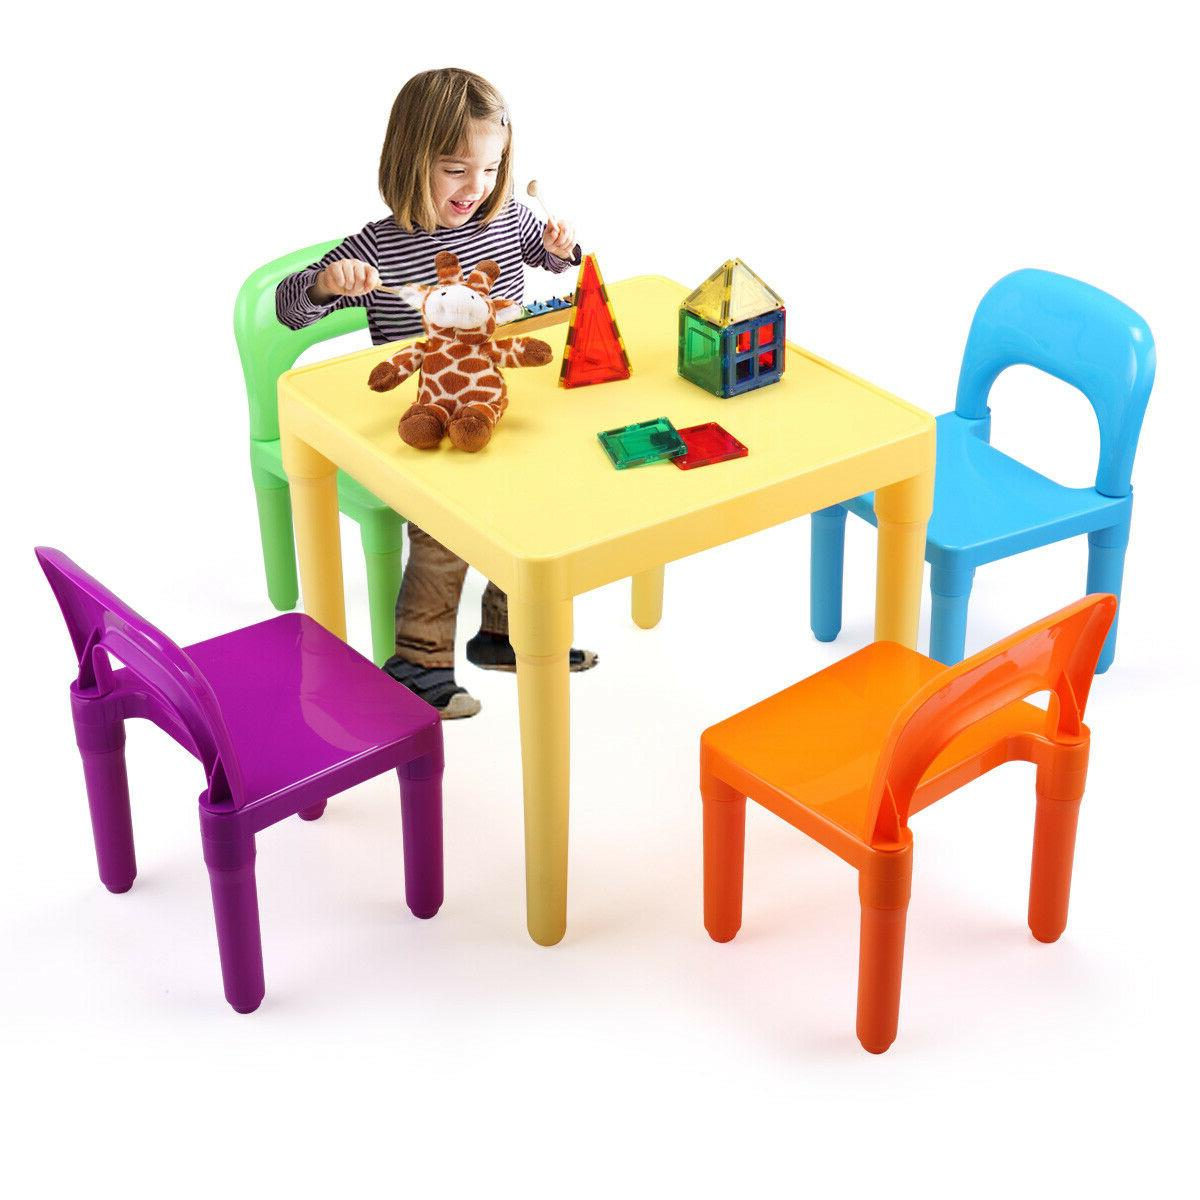 4 Chairs Set Play Set Vibrant